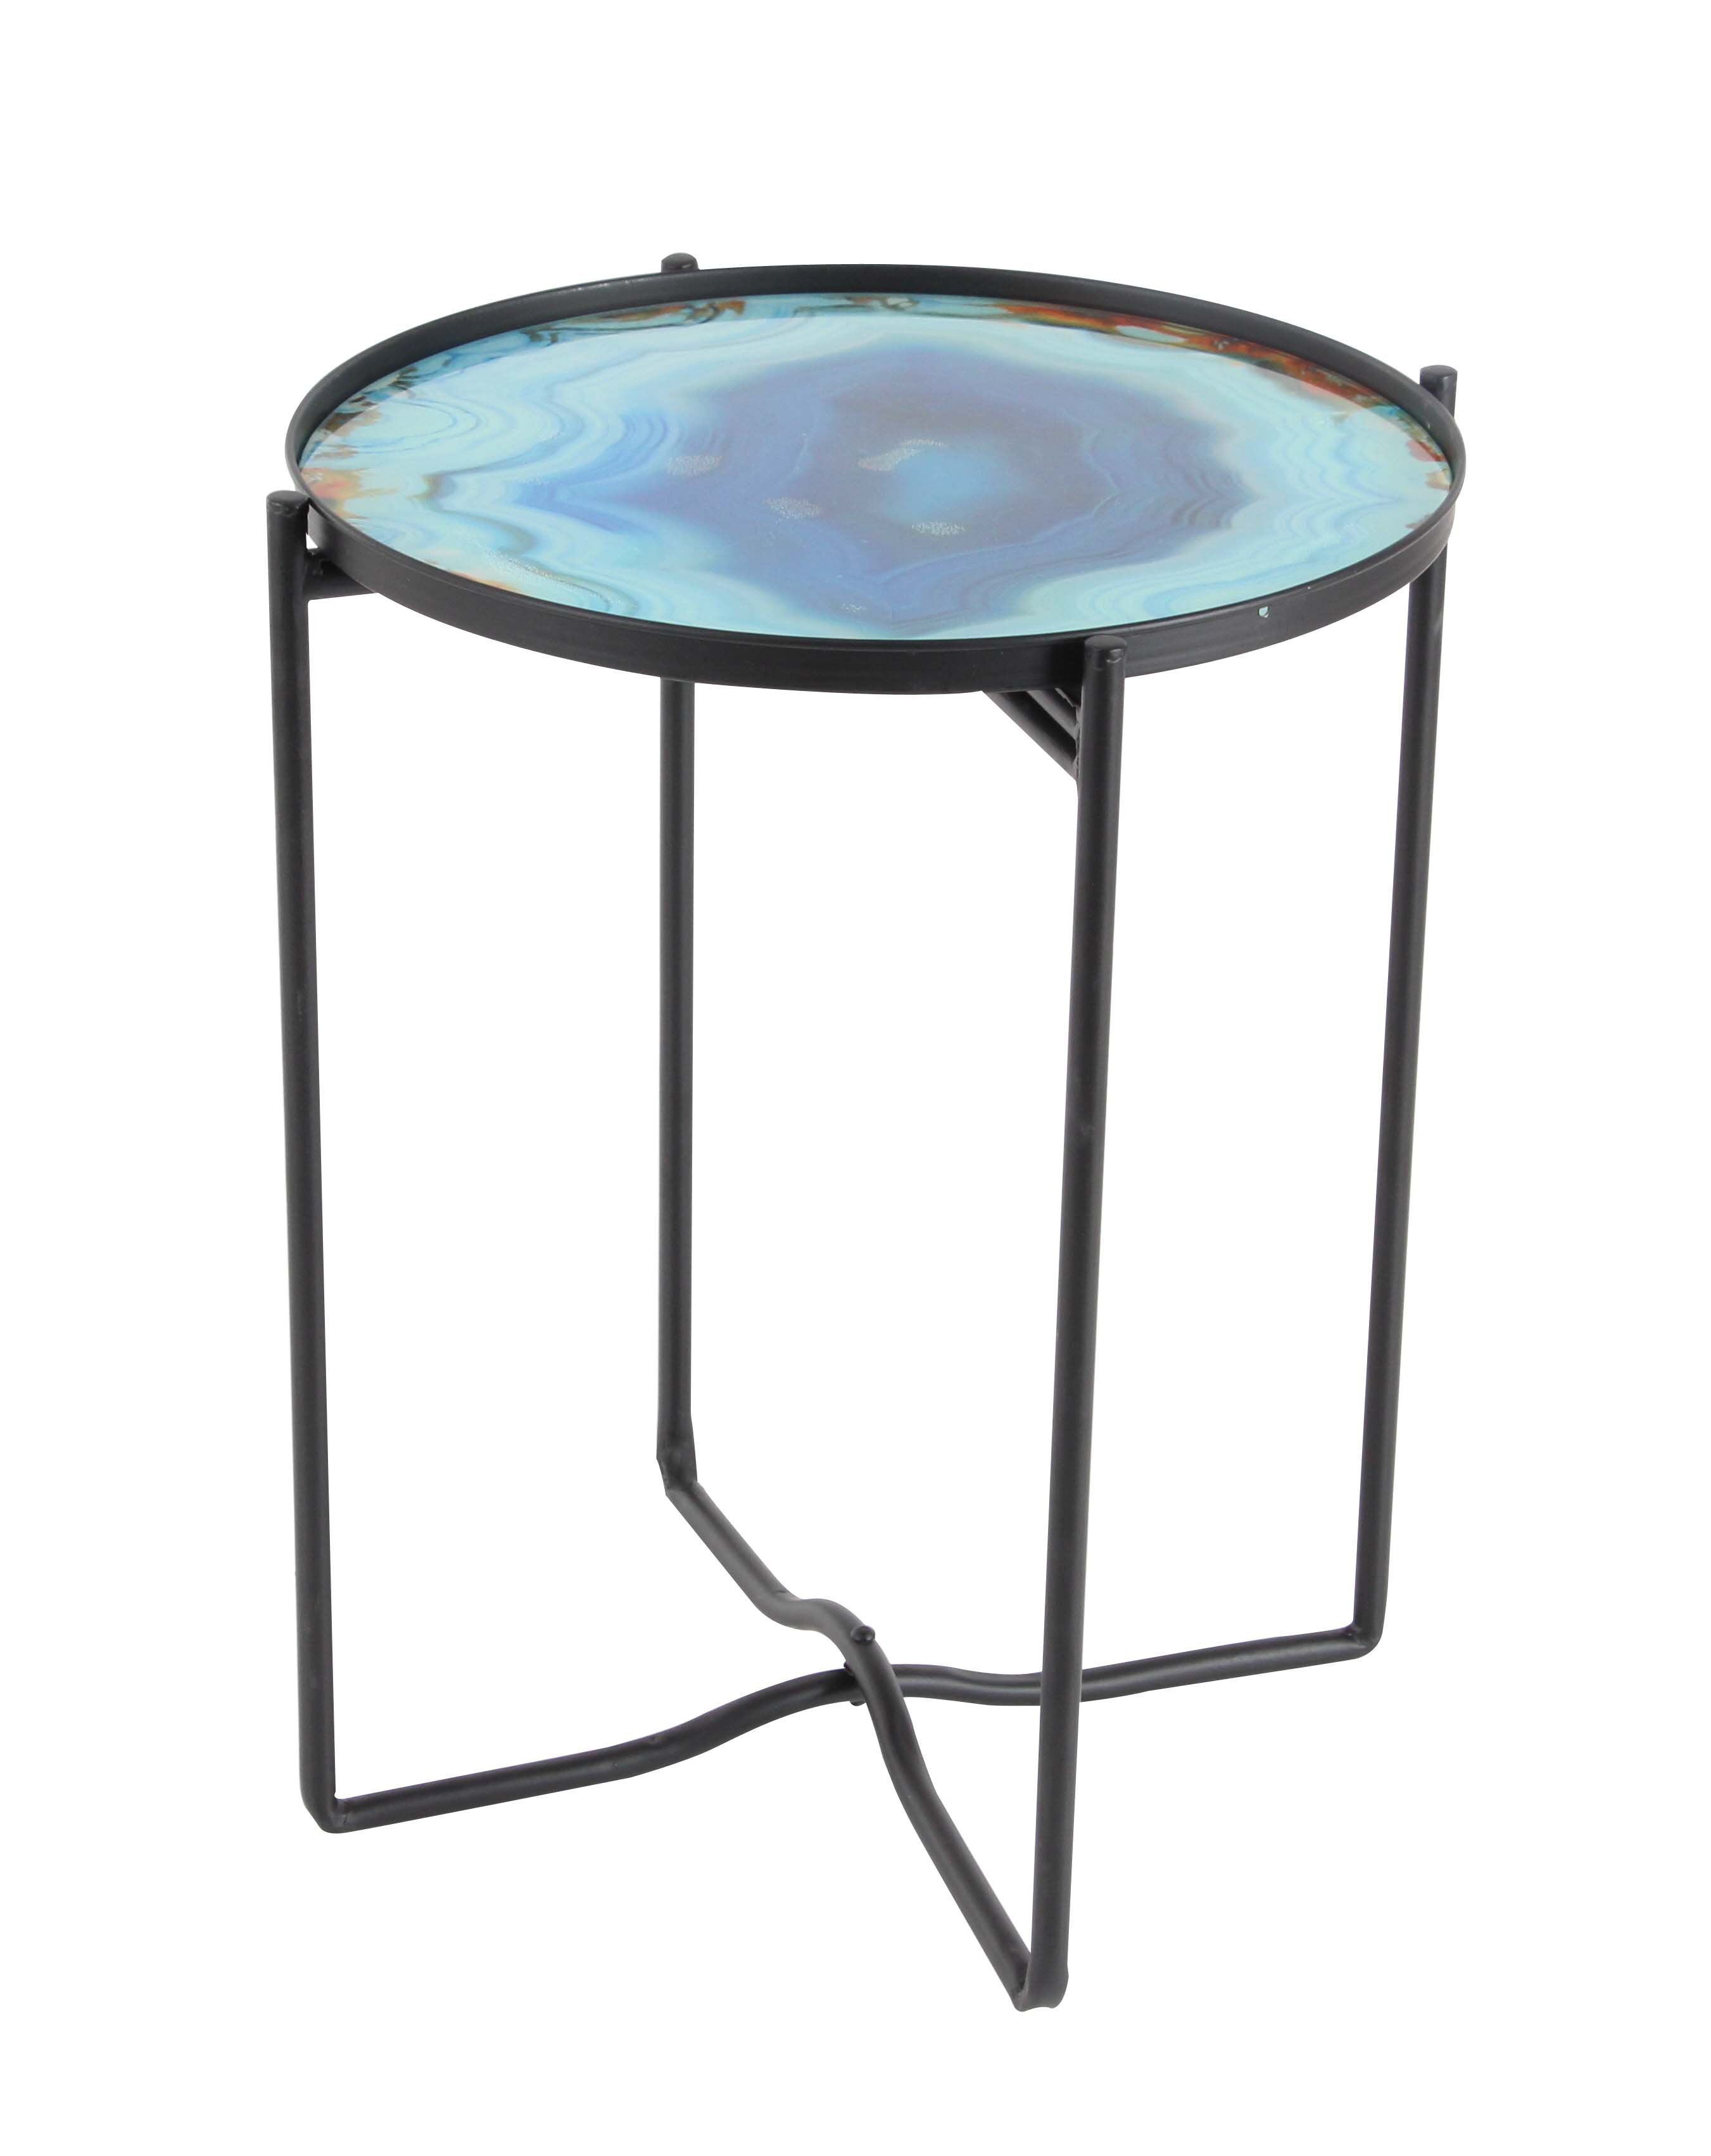 Decmode Contemporary 19 X 16 Inch Iron and Glass Round Accent Table, Blue by DecMode